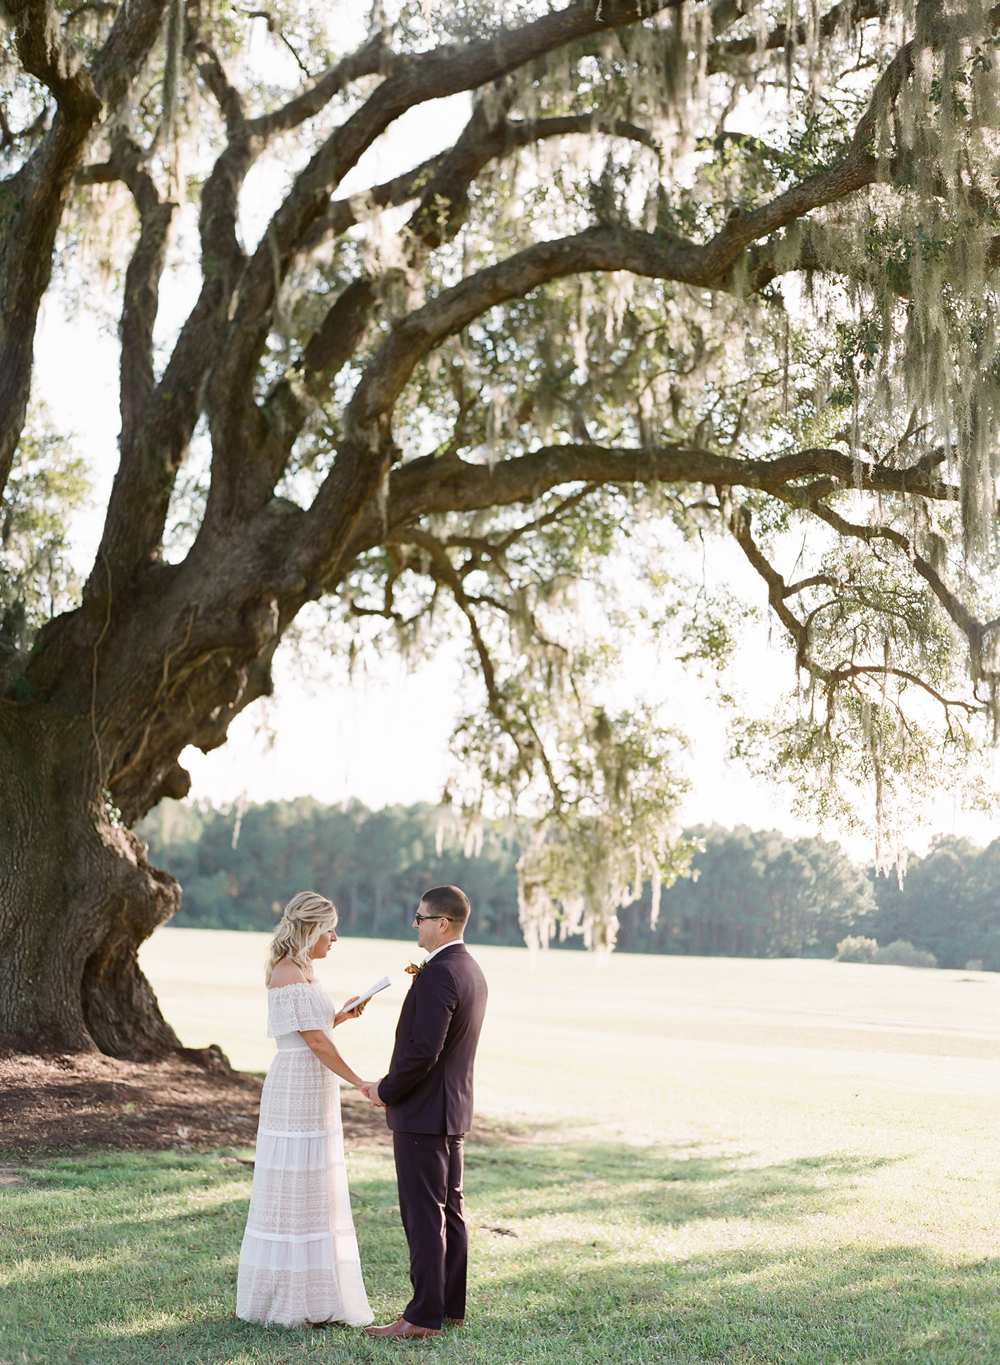 Couple exchanges vows privately under large oak tree